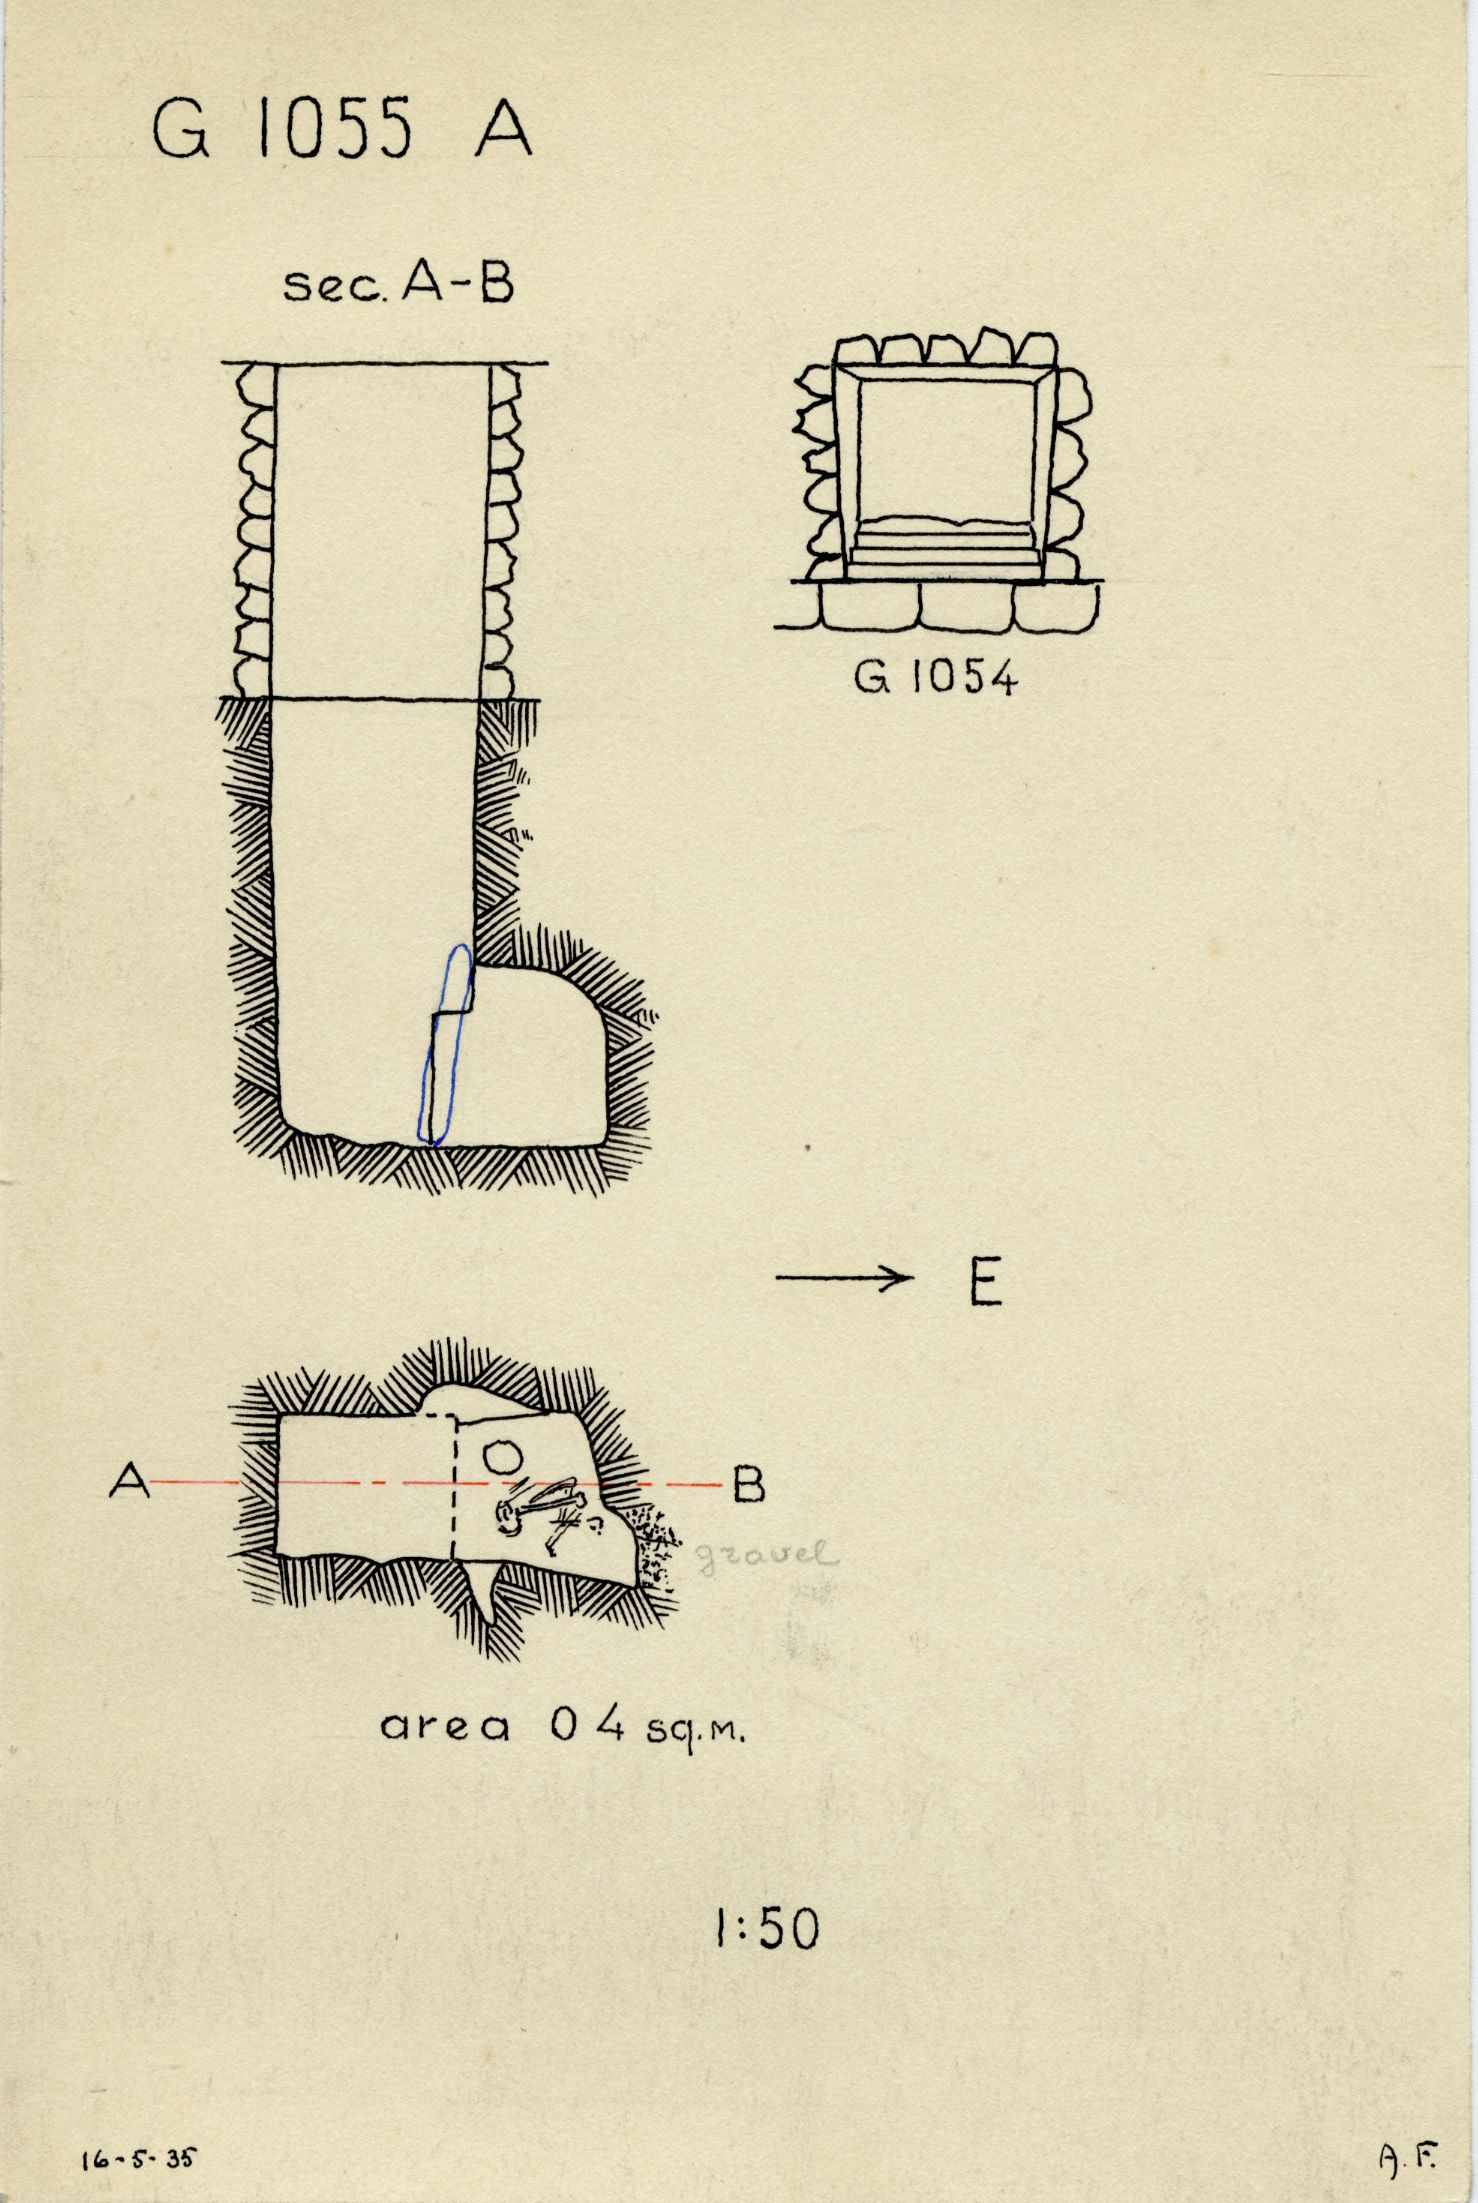 Maps and plans: G 1055, Shaft A